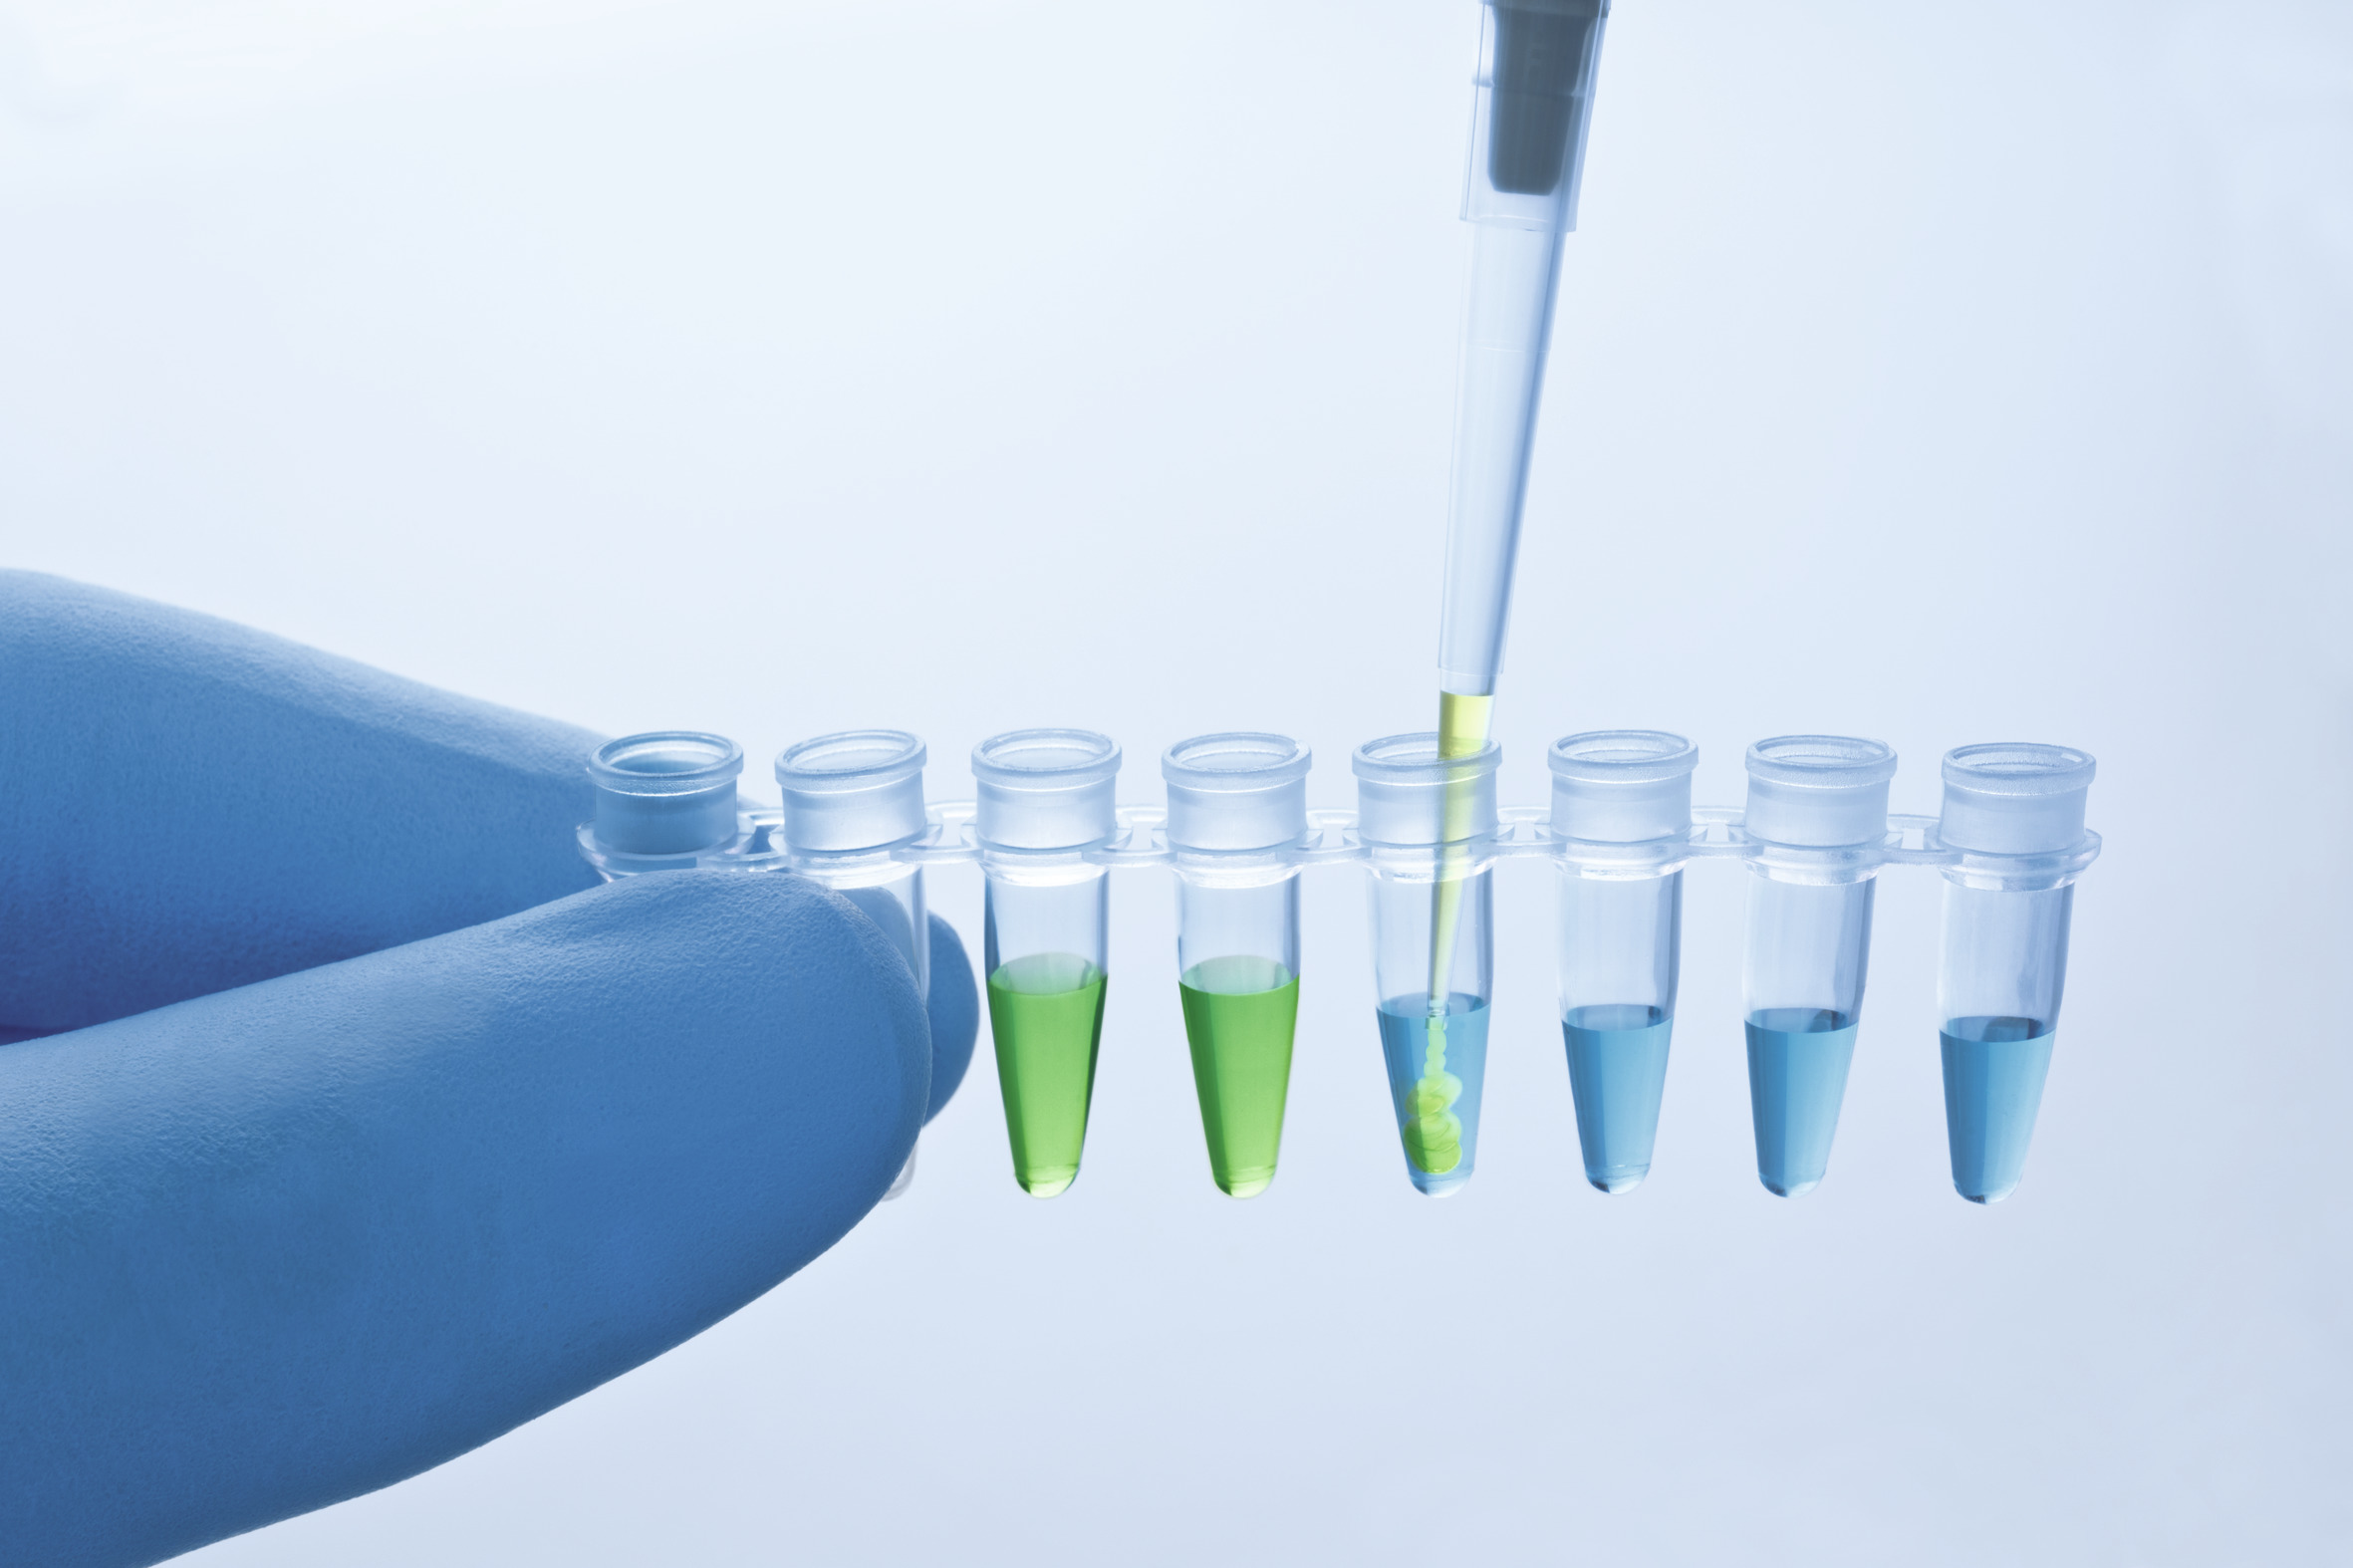 Accurate reaction setup indicated by the built-in pipetting control.